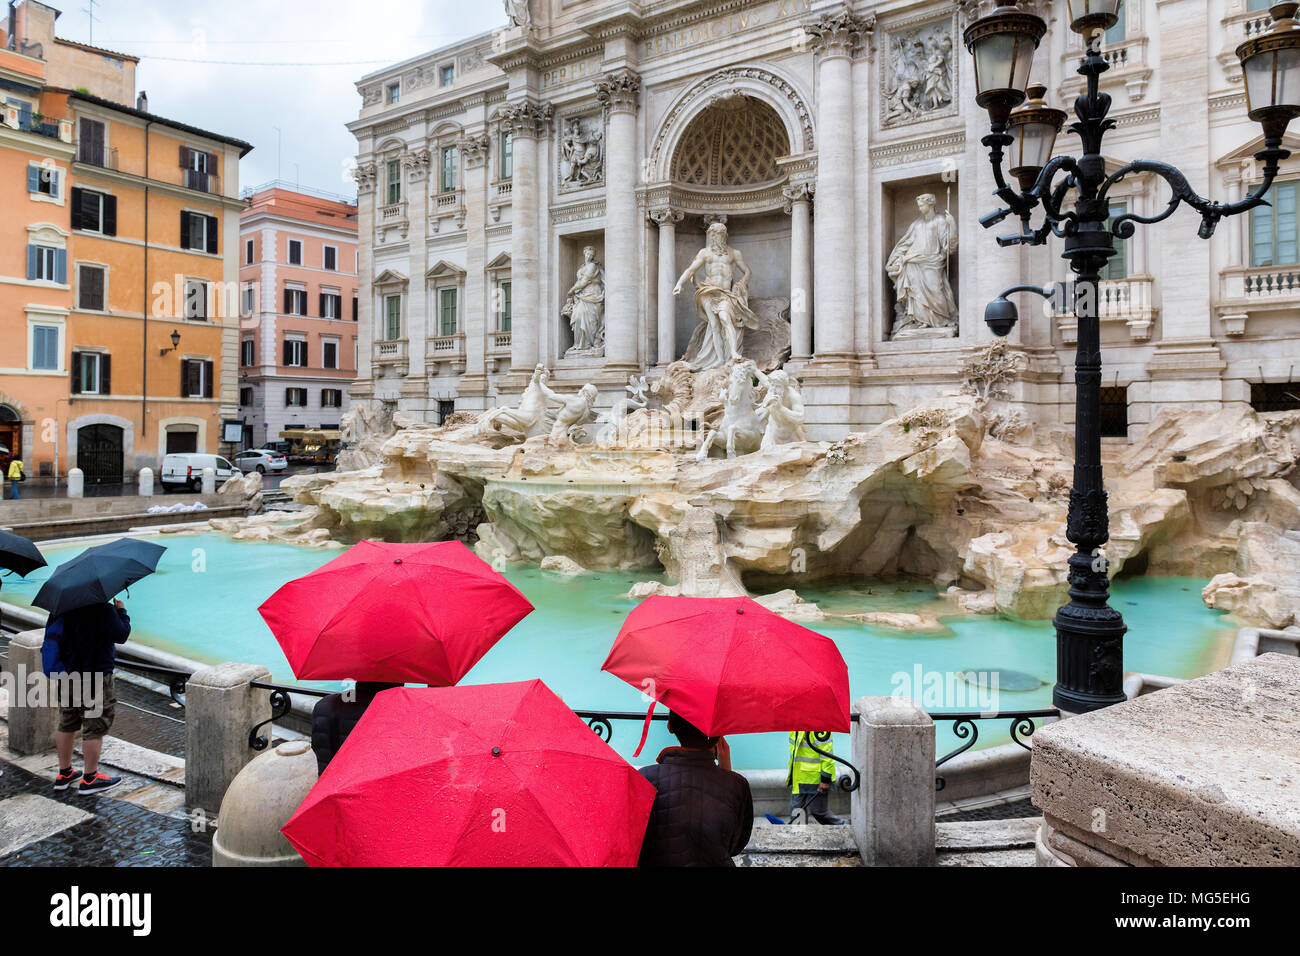 Rome Trevi Fountain at raining day, Rome, Italy. - Stock Image